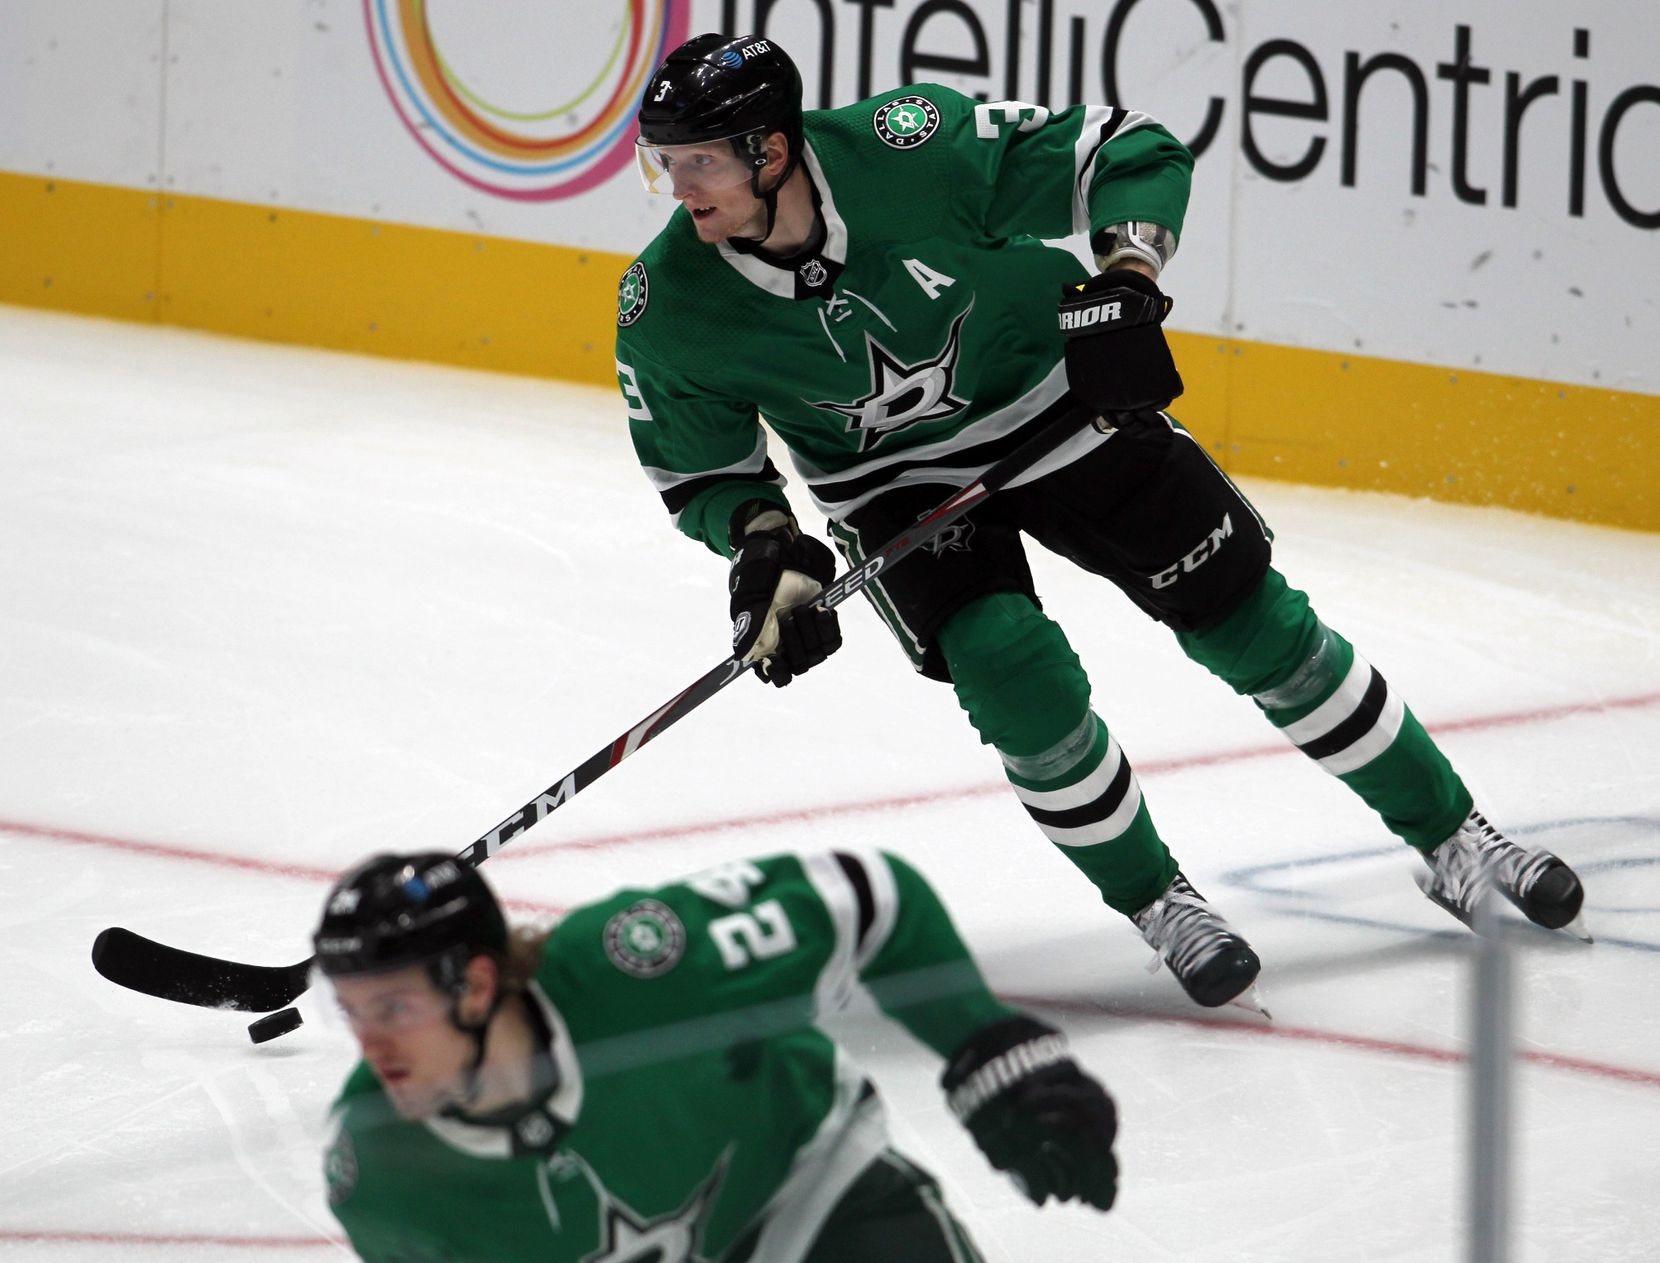 Dallas Stars defenseman John Klingberg (3) moves the puck from behind the Stars goal during the second period of play against the Nashville Predators. The two teams played their NHL game at the American Airlines Center in Dallas on January 24 , 2021. (Steve Hamm/ Special Contributor)